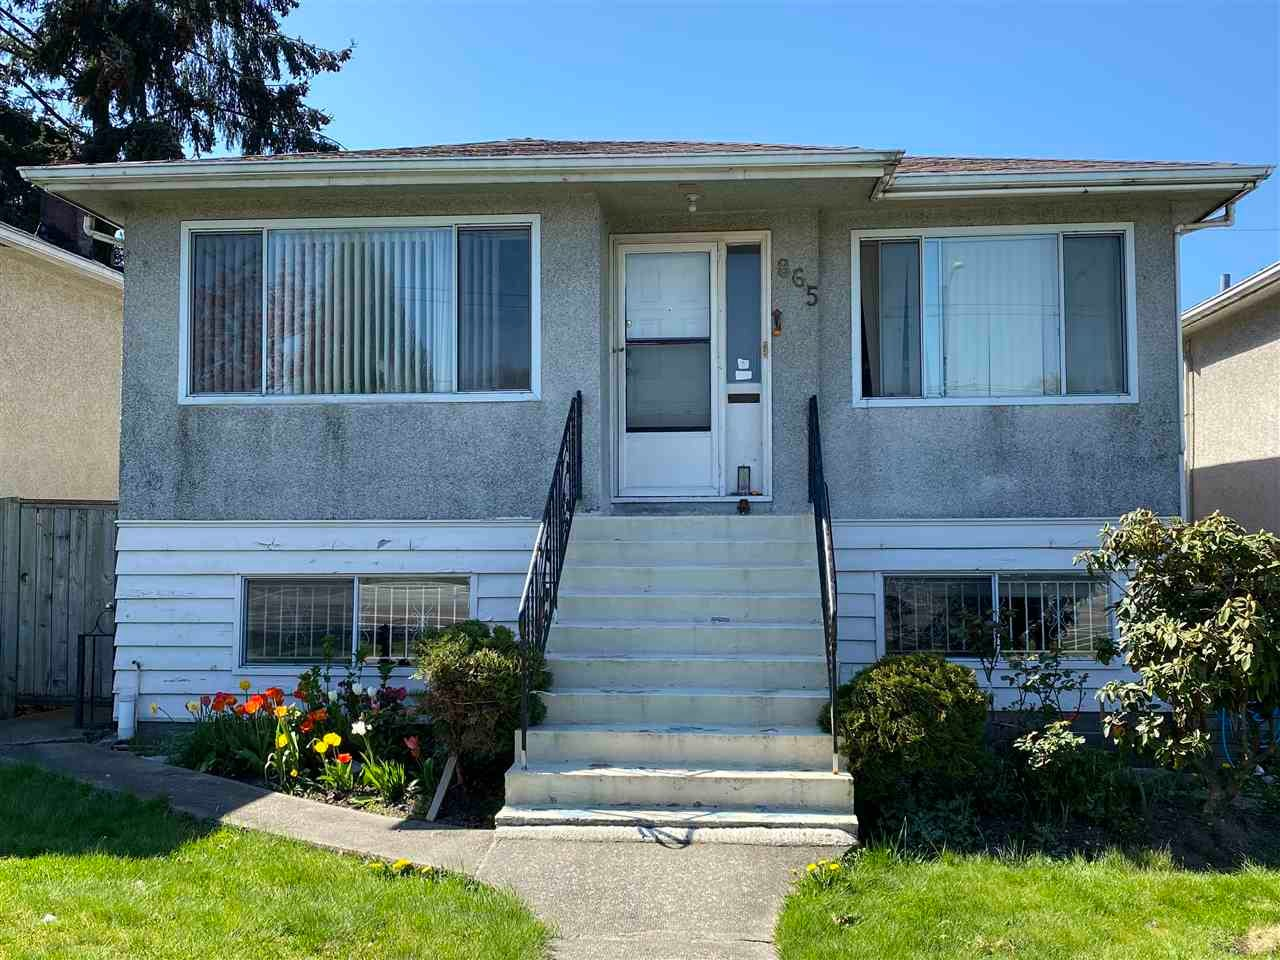 865 NANAIMO STREET - Hastings House/Single Family for sale, 6 Bedrooms (R2567936) - #1